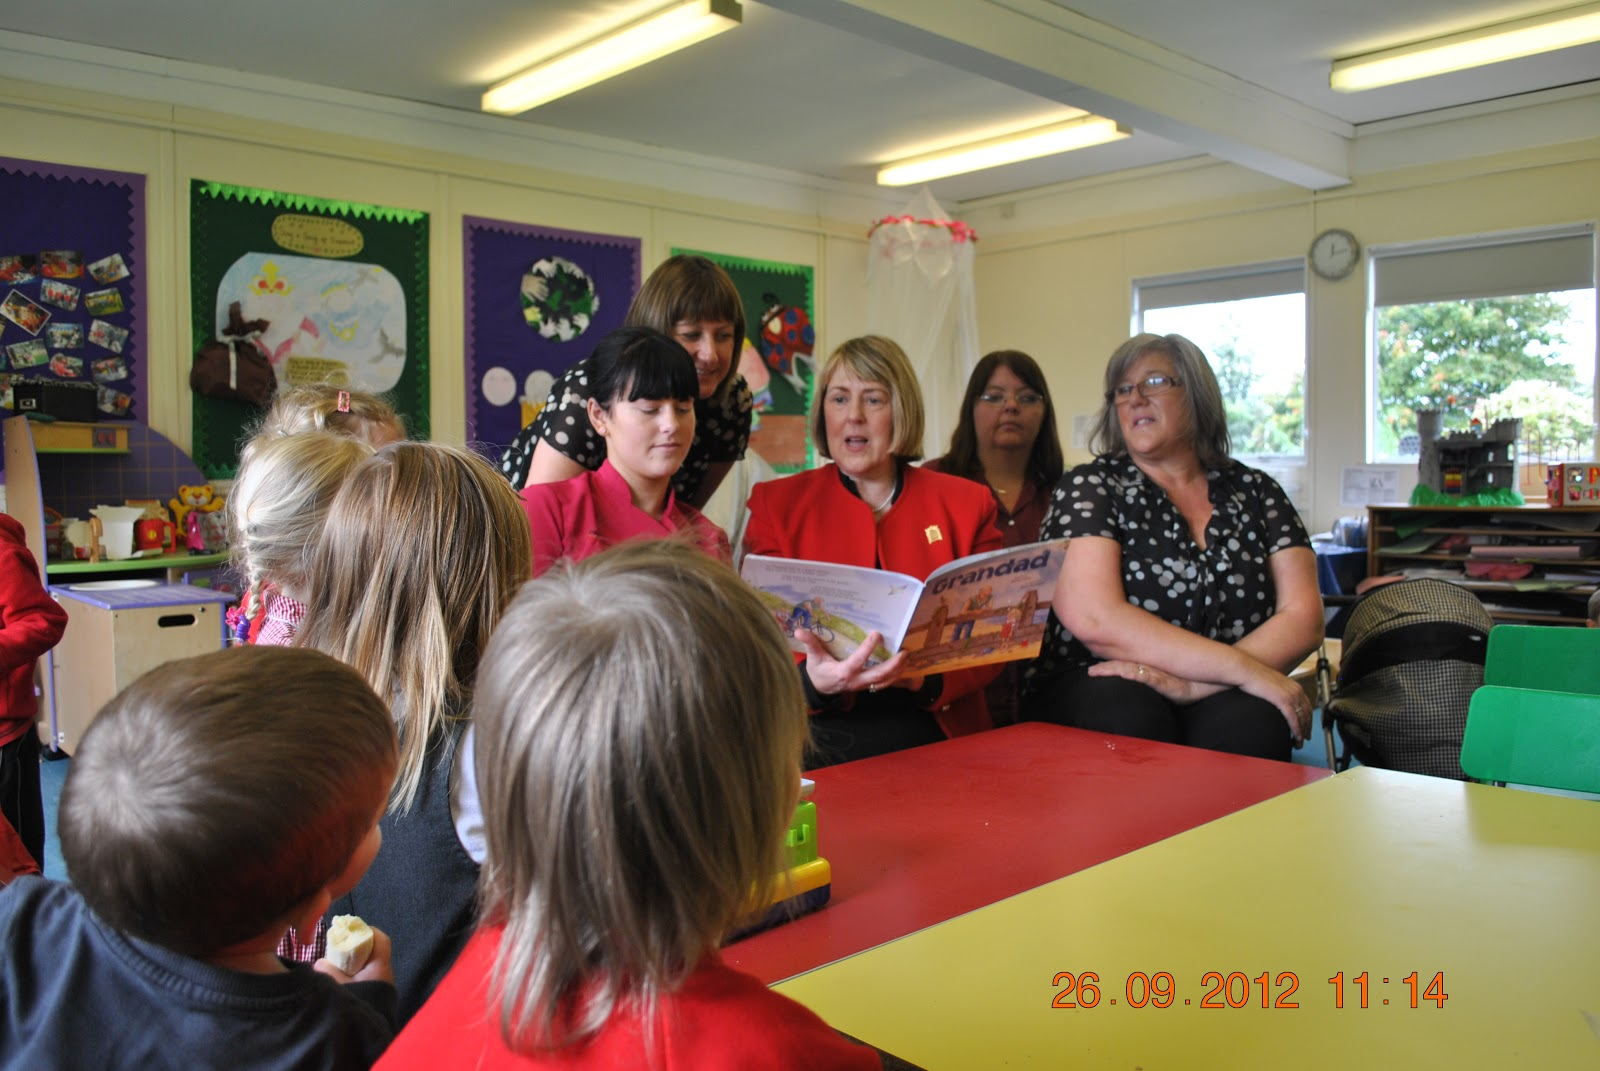 Fiona Bruce Mp Press Releases Archive Excalibur Play And Learn Pre School Visit